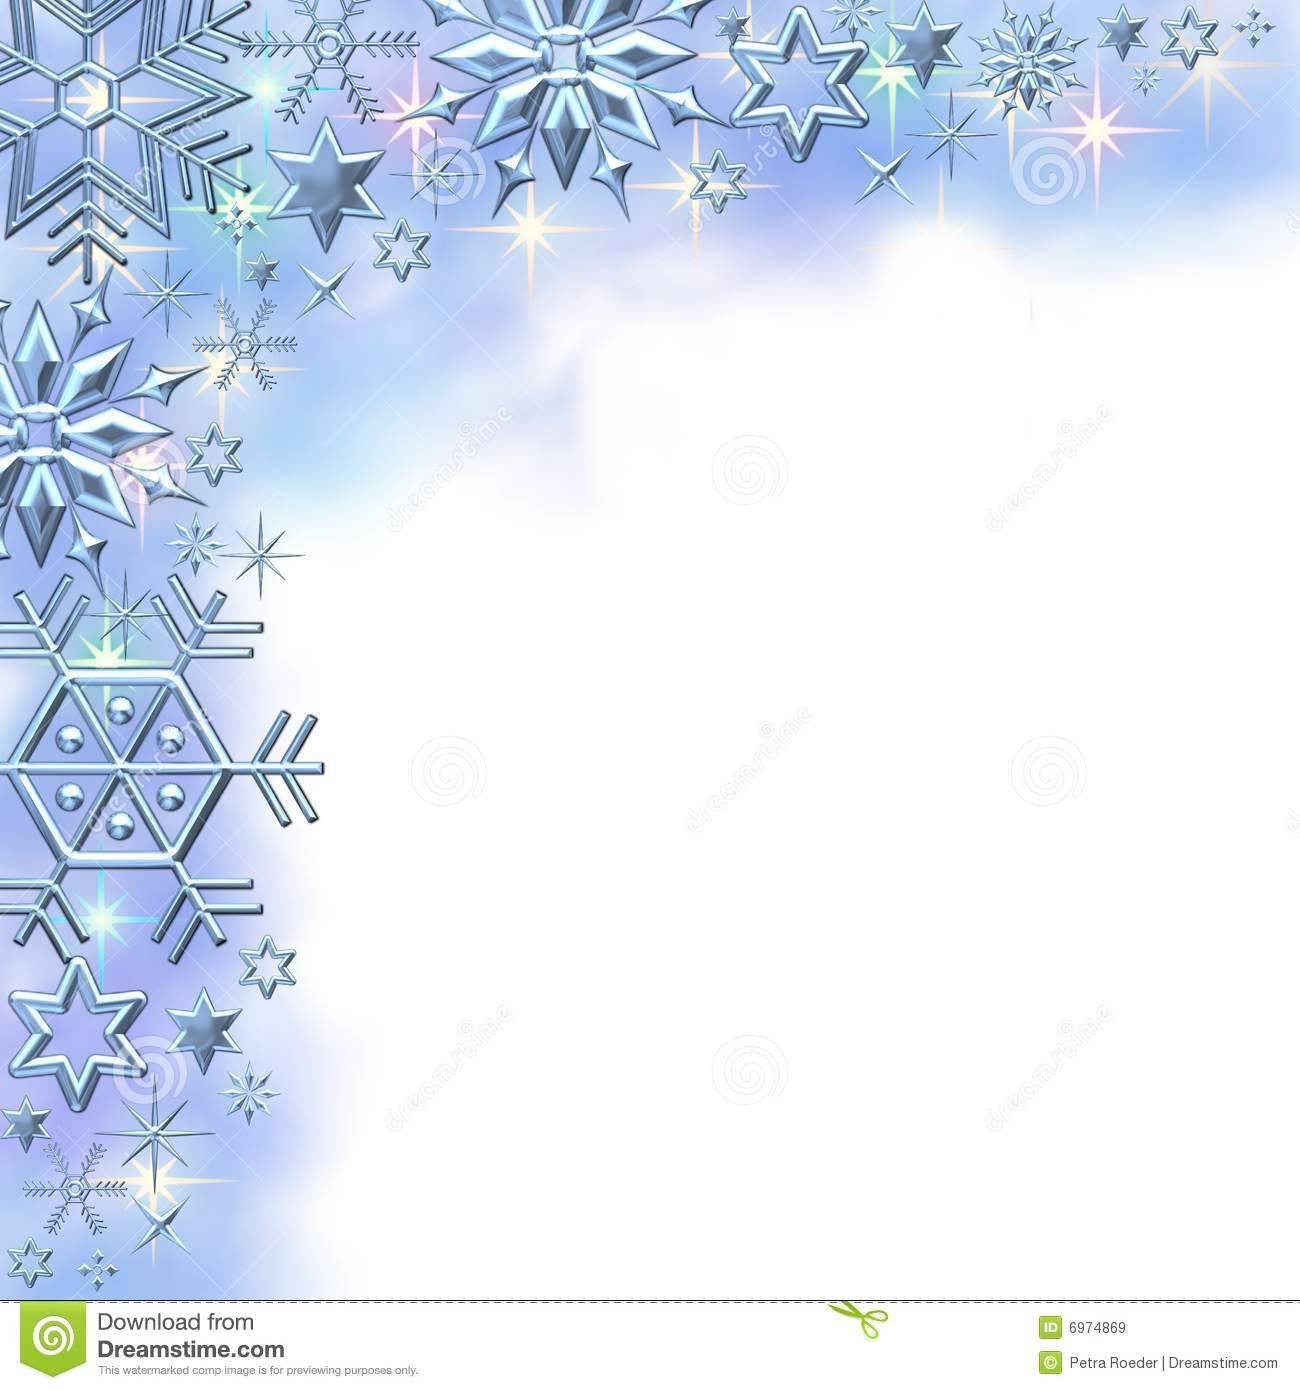 Snowflake Winter Border Royalty Free Stock Images - Image: 6974869